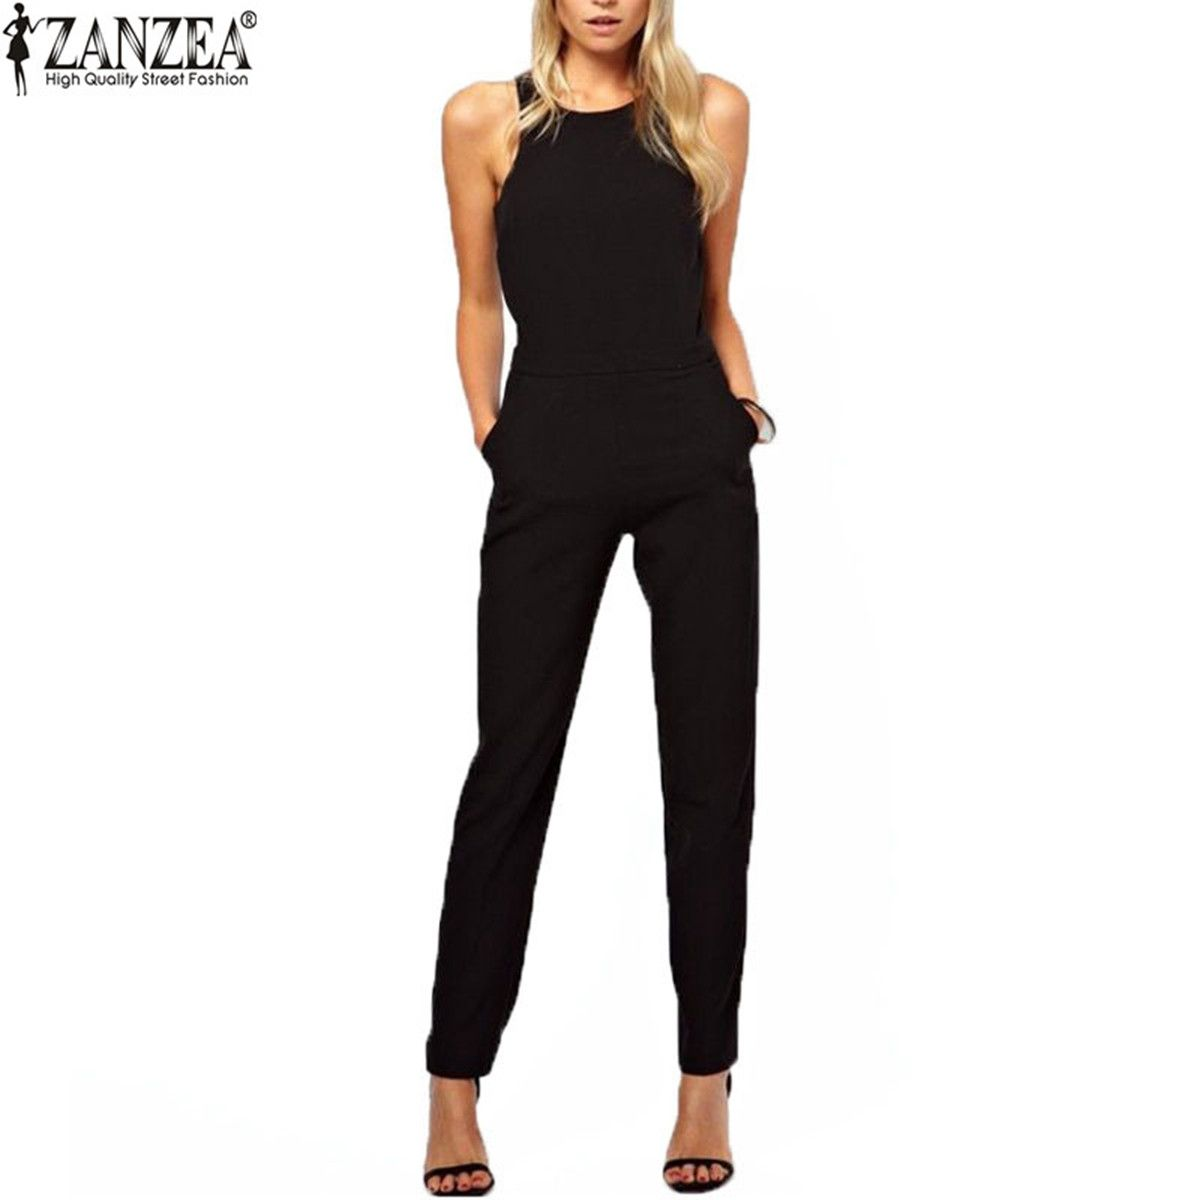 Zanzea Brand 2017 Summer Elegant Womens Rompers Jumpsuit Casual Solid Bodysuit Sleeveless Crew Neck Long Playsuits Plus Size